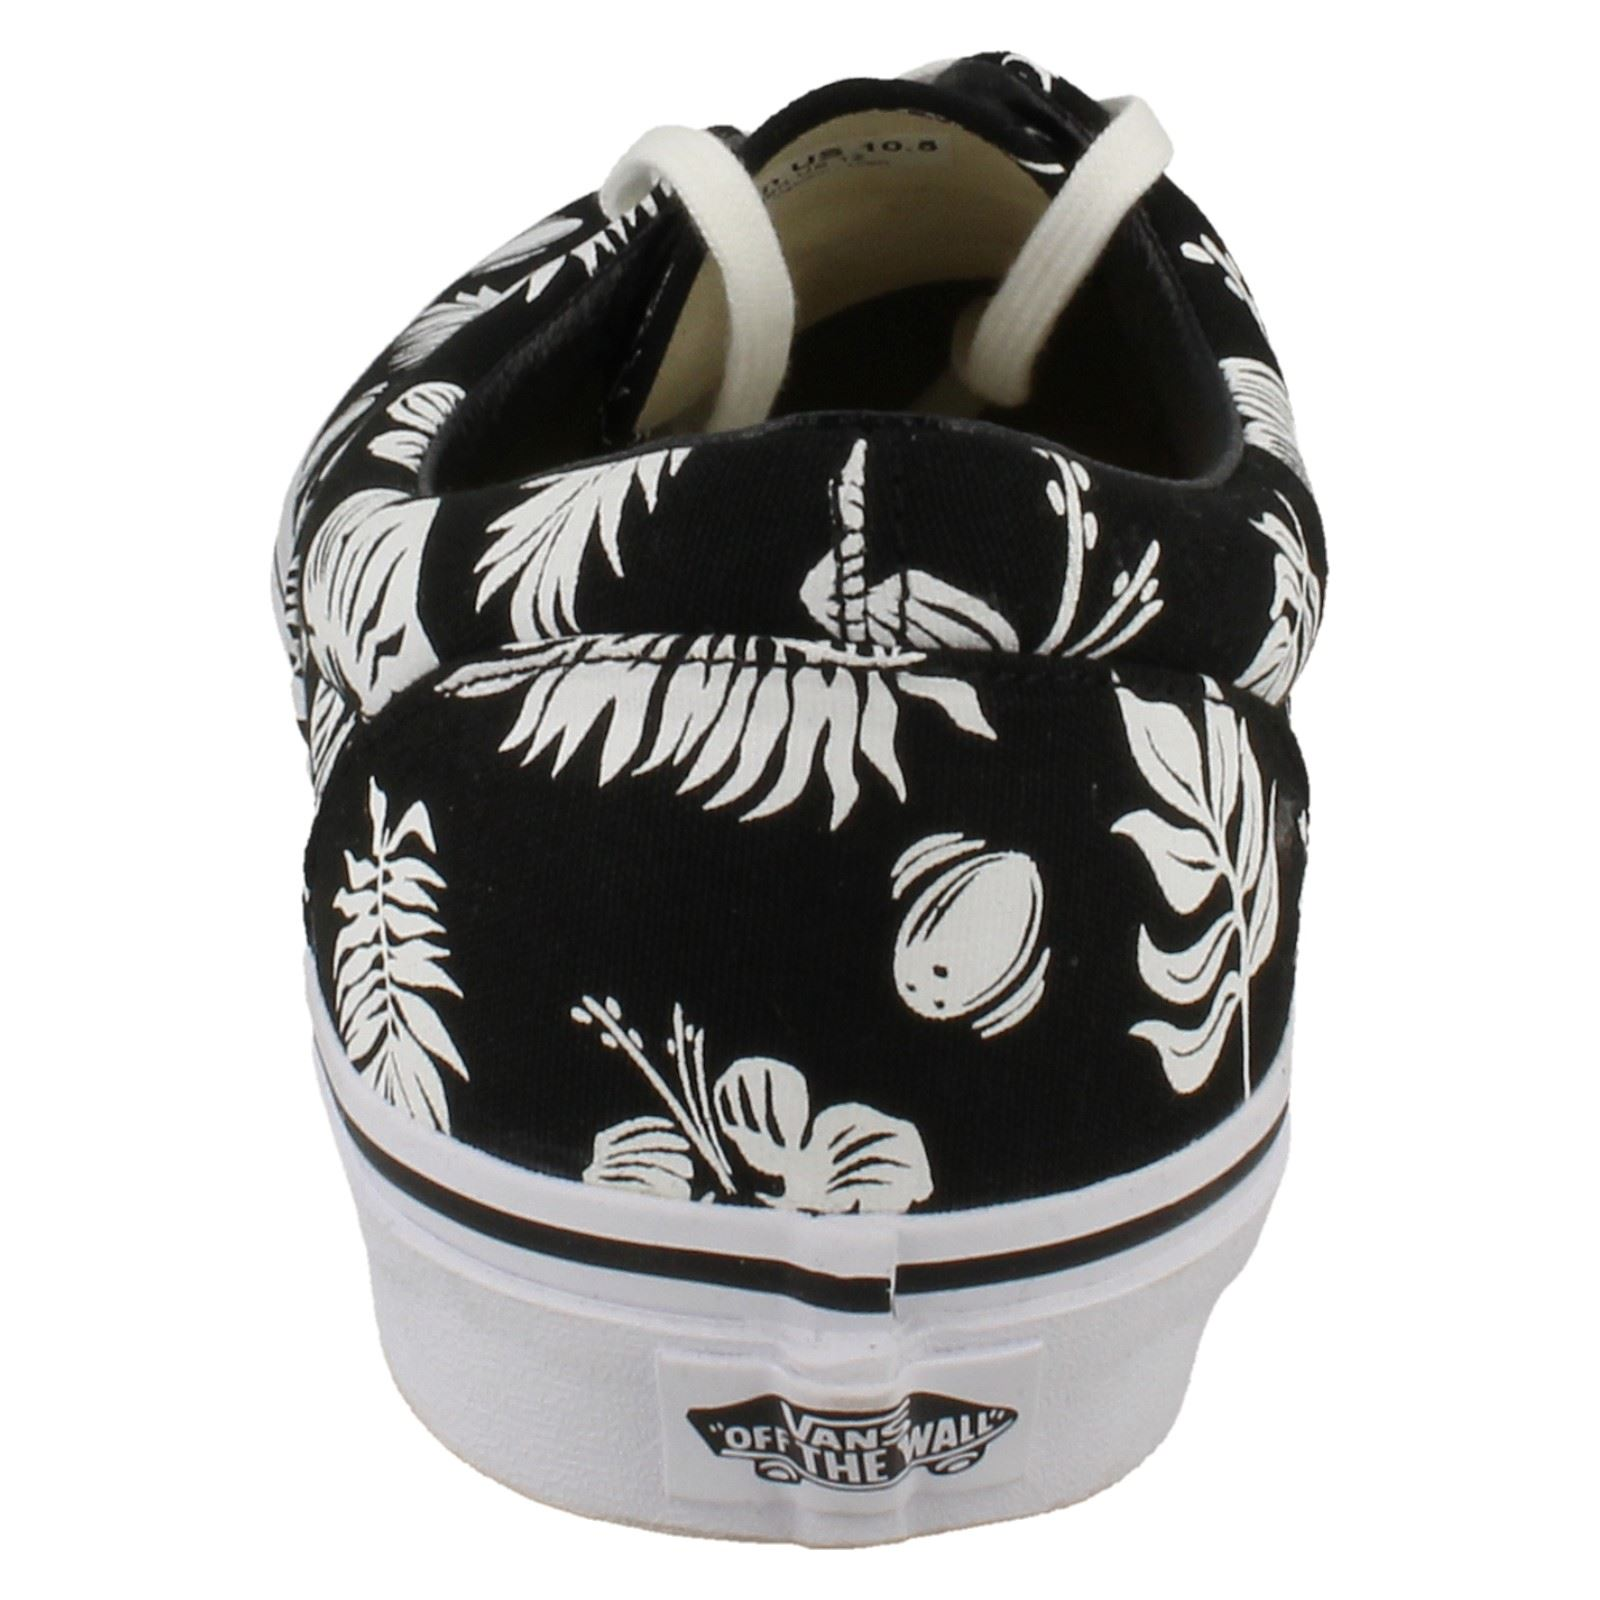 unisex vans off the wall casual shoes era w 3 cen ebay. Black Bedroom Furniture Sets. Home Design Ideas